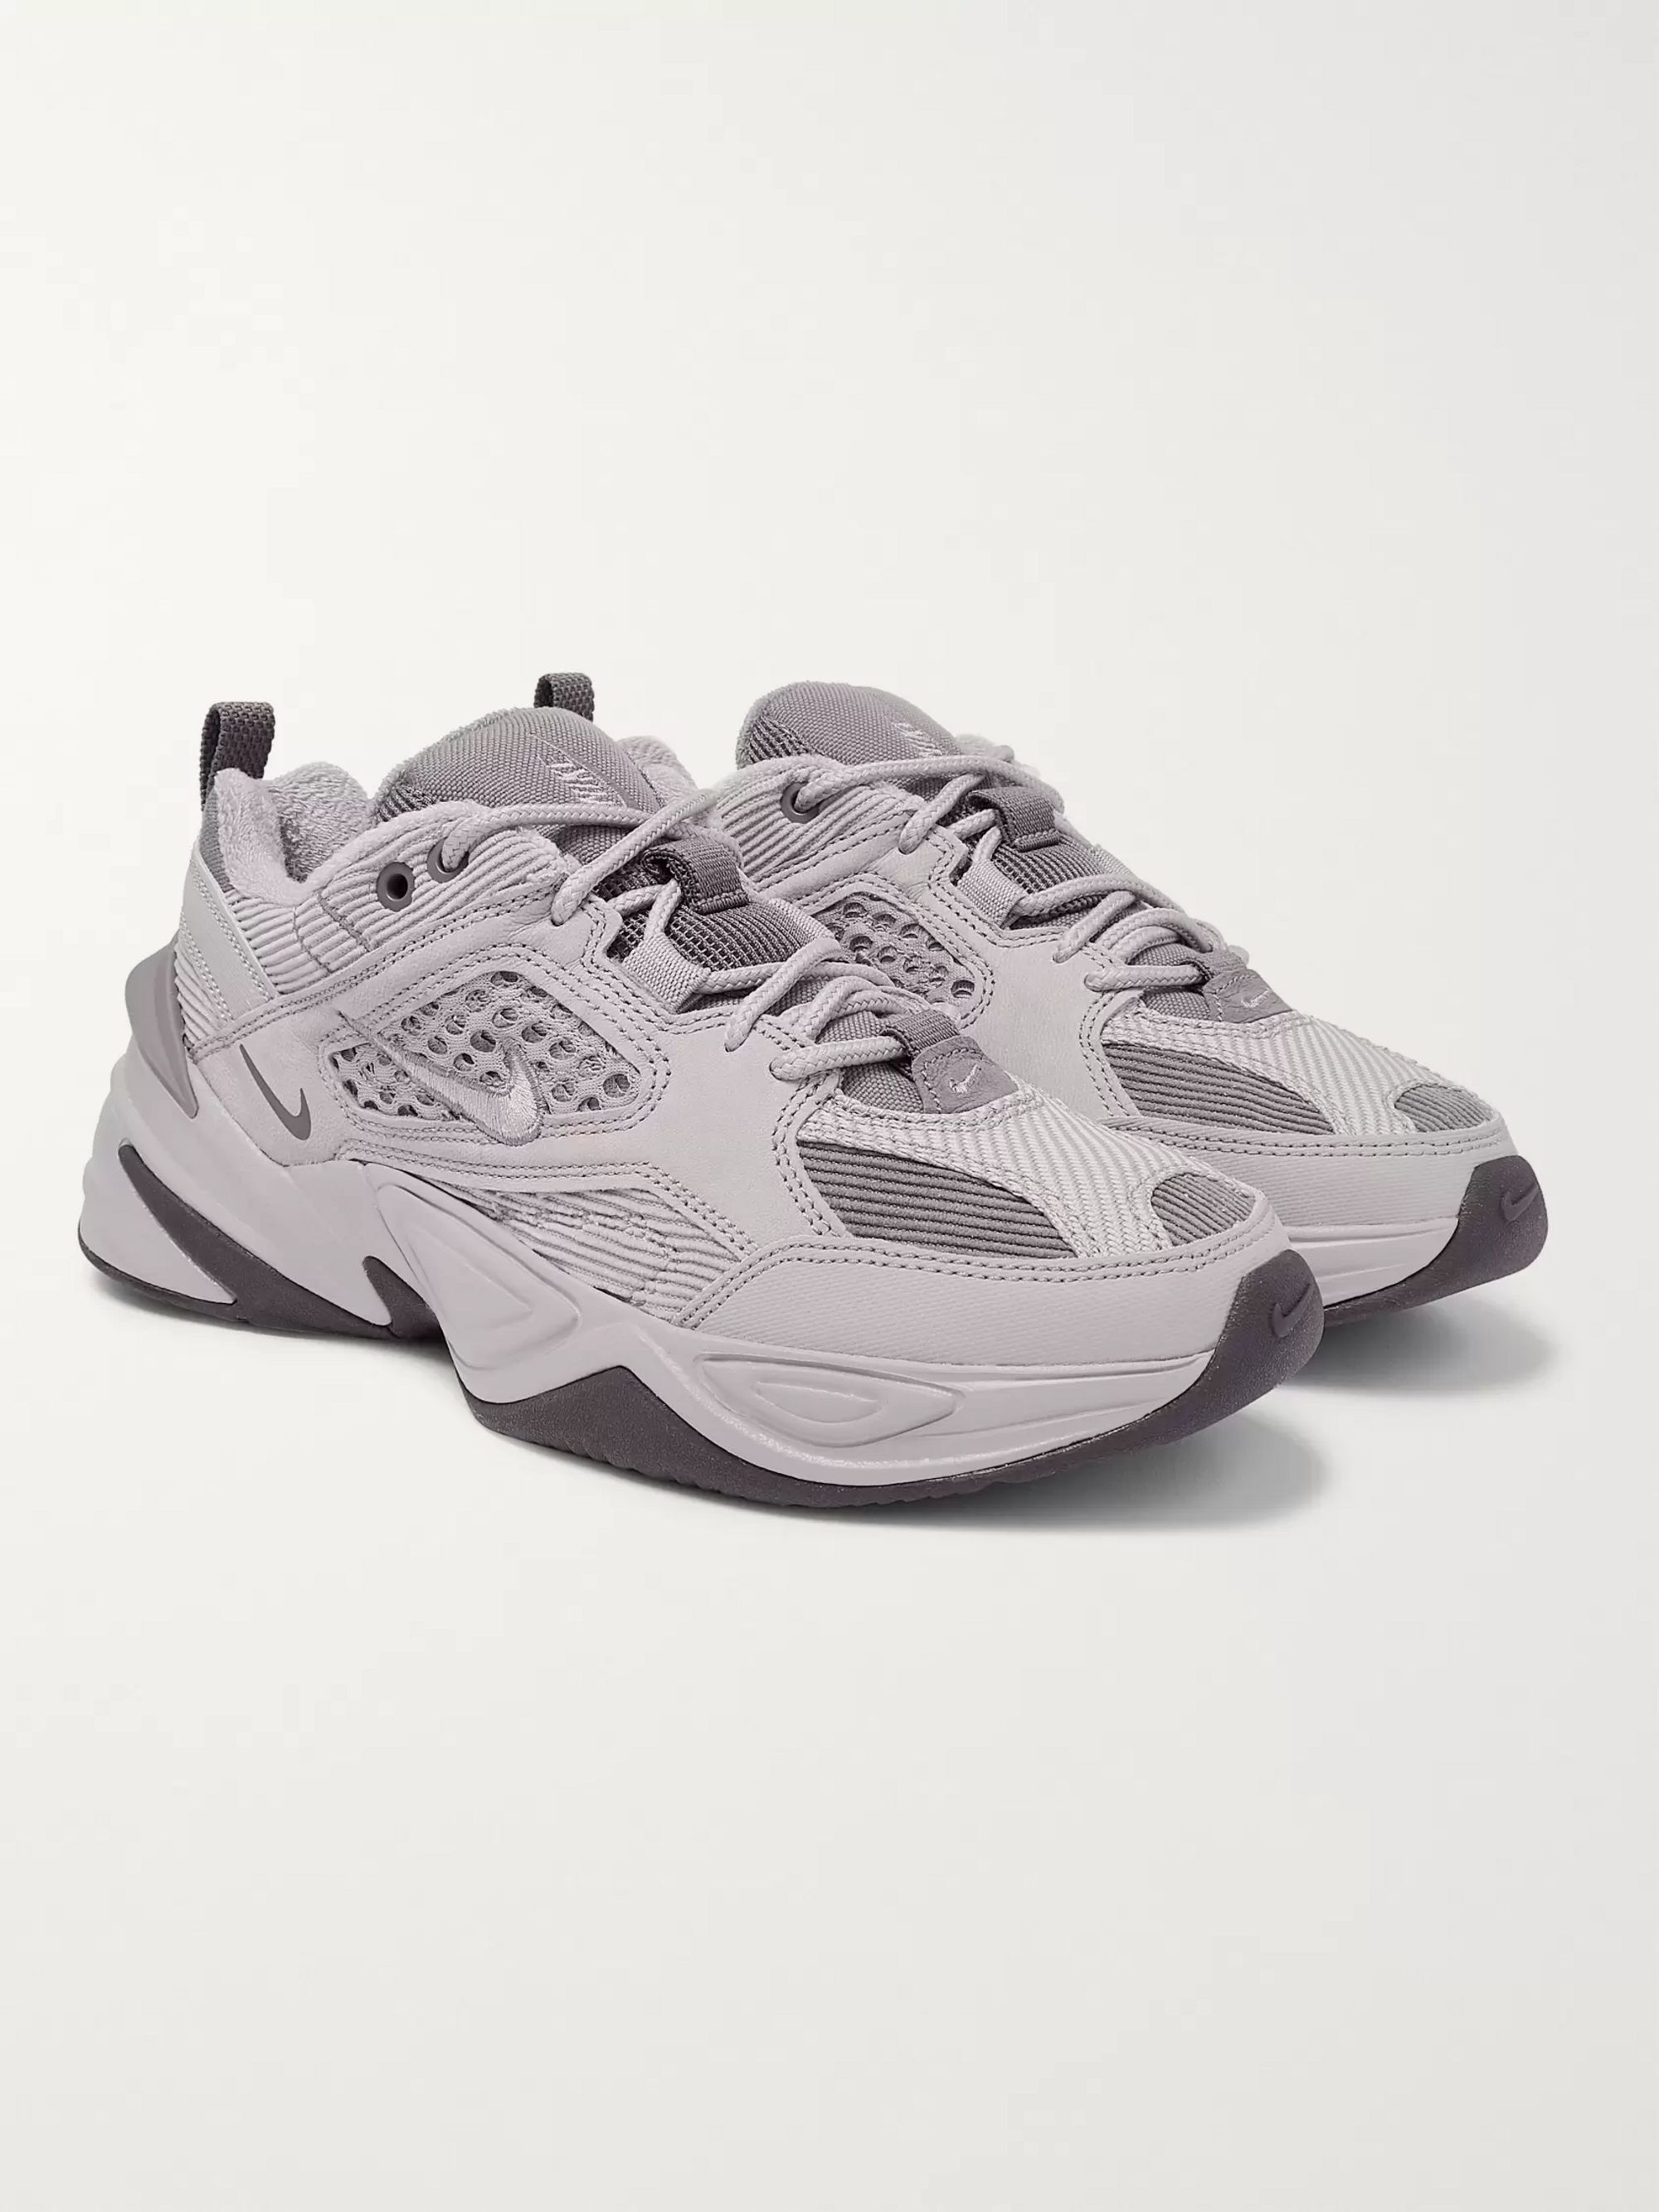 M2K Tekno SP Leather and Mesh Sneakers